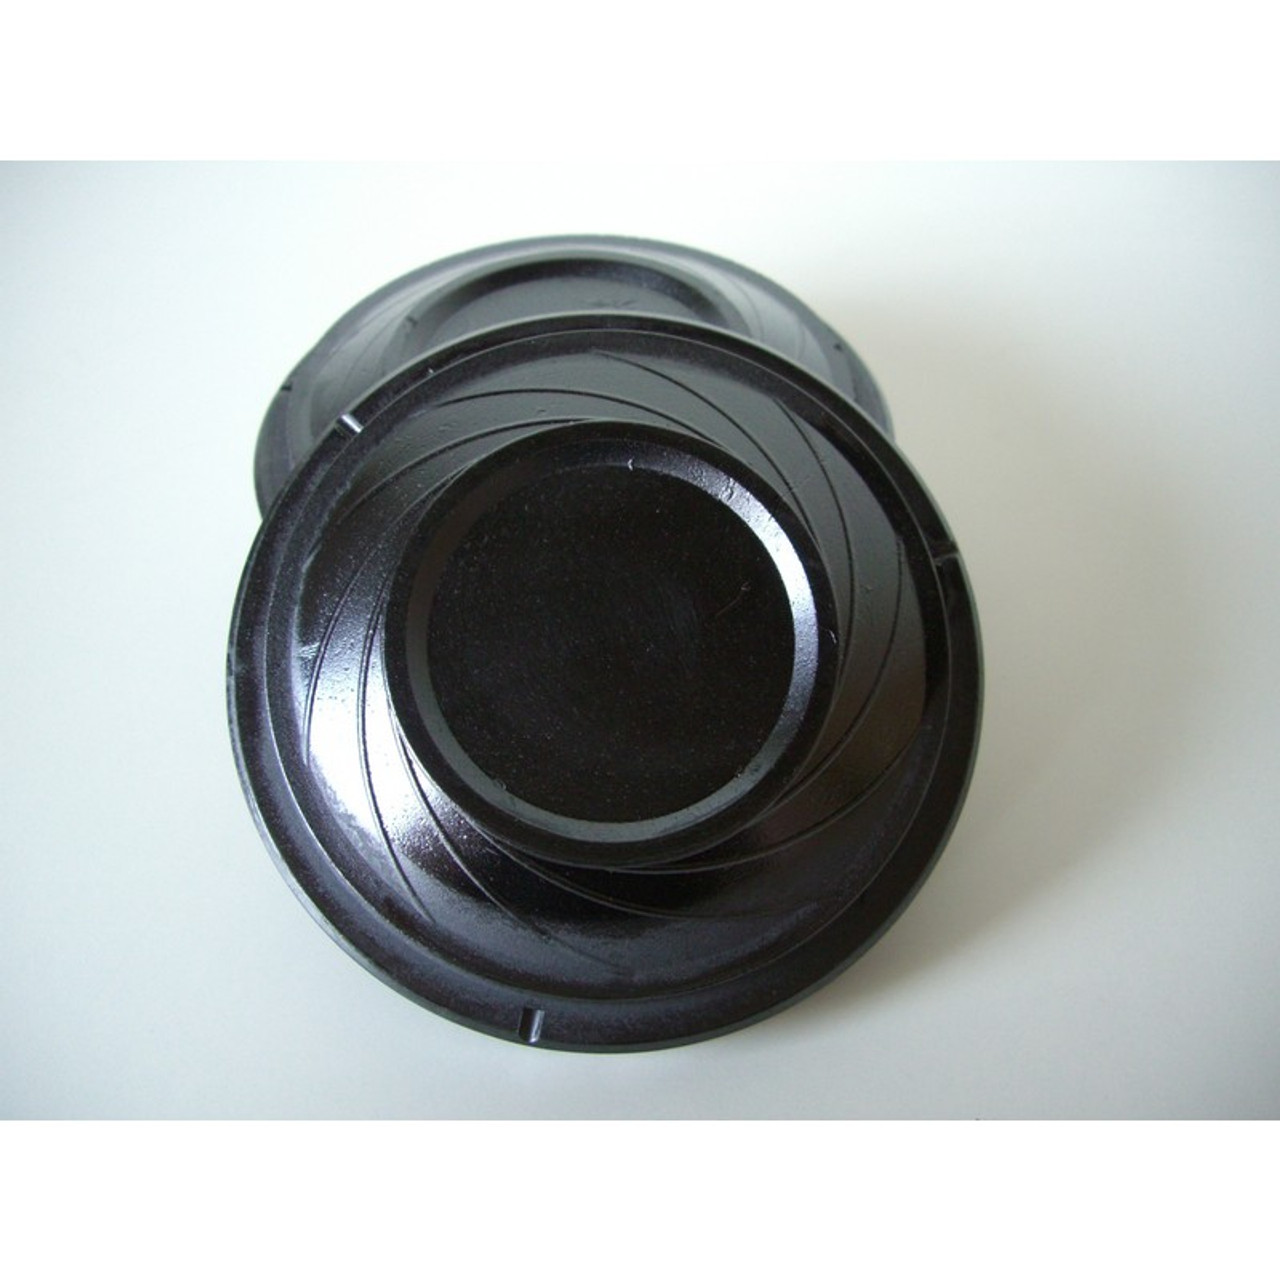 CCI Standard Black Clays, buy at cheap rates from bradford stalker